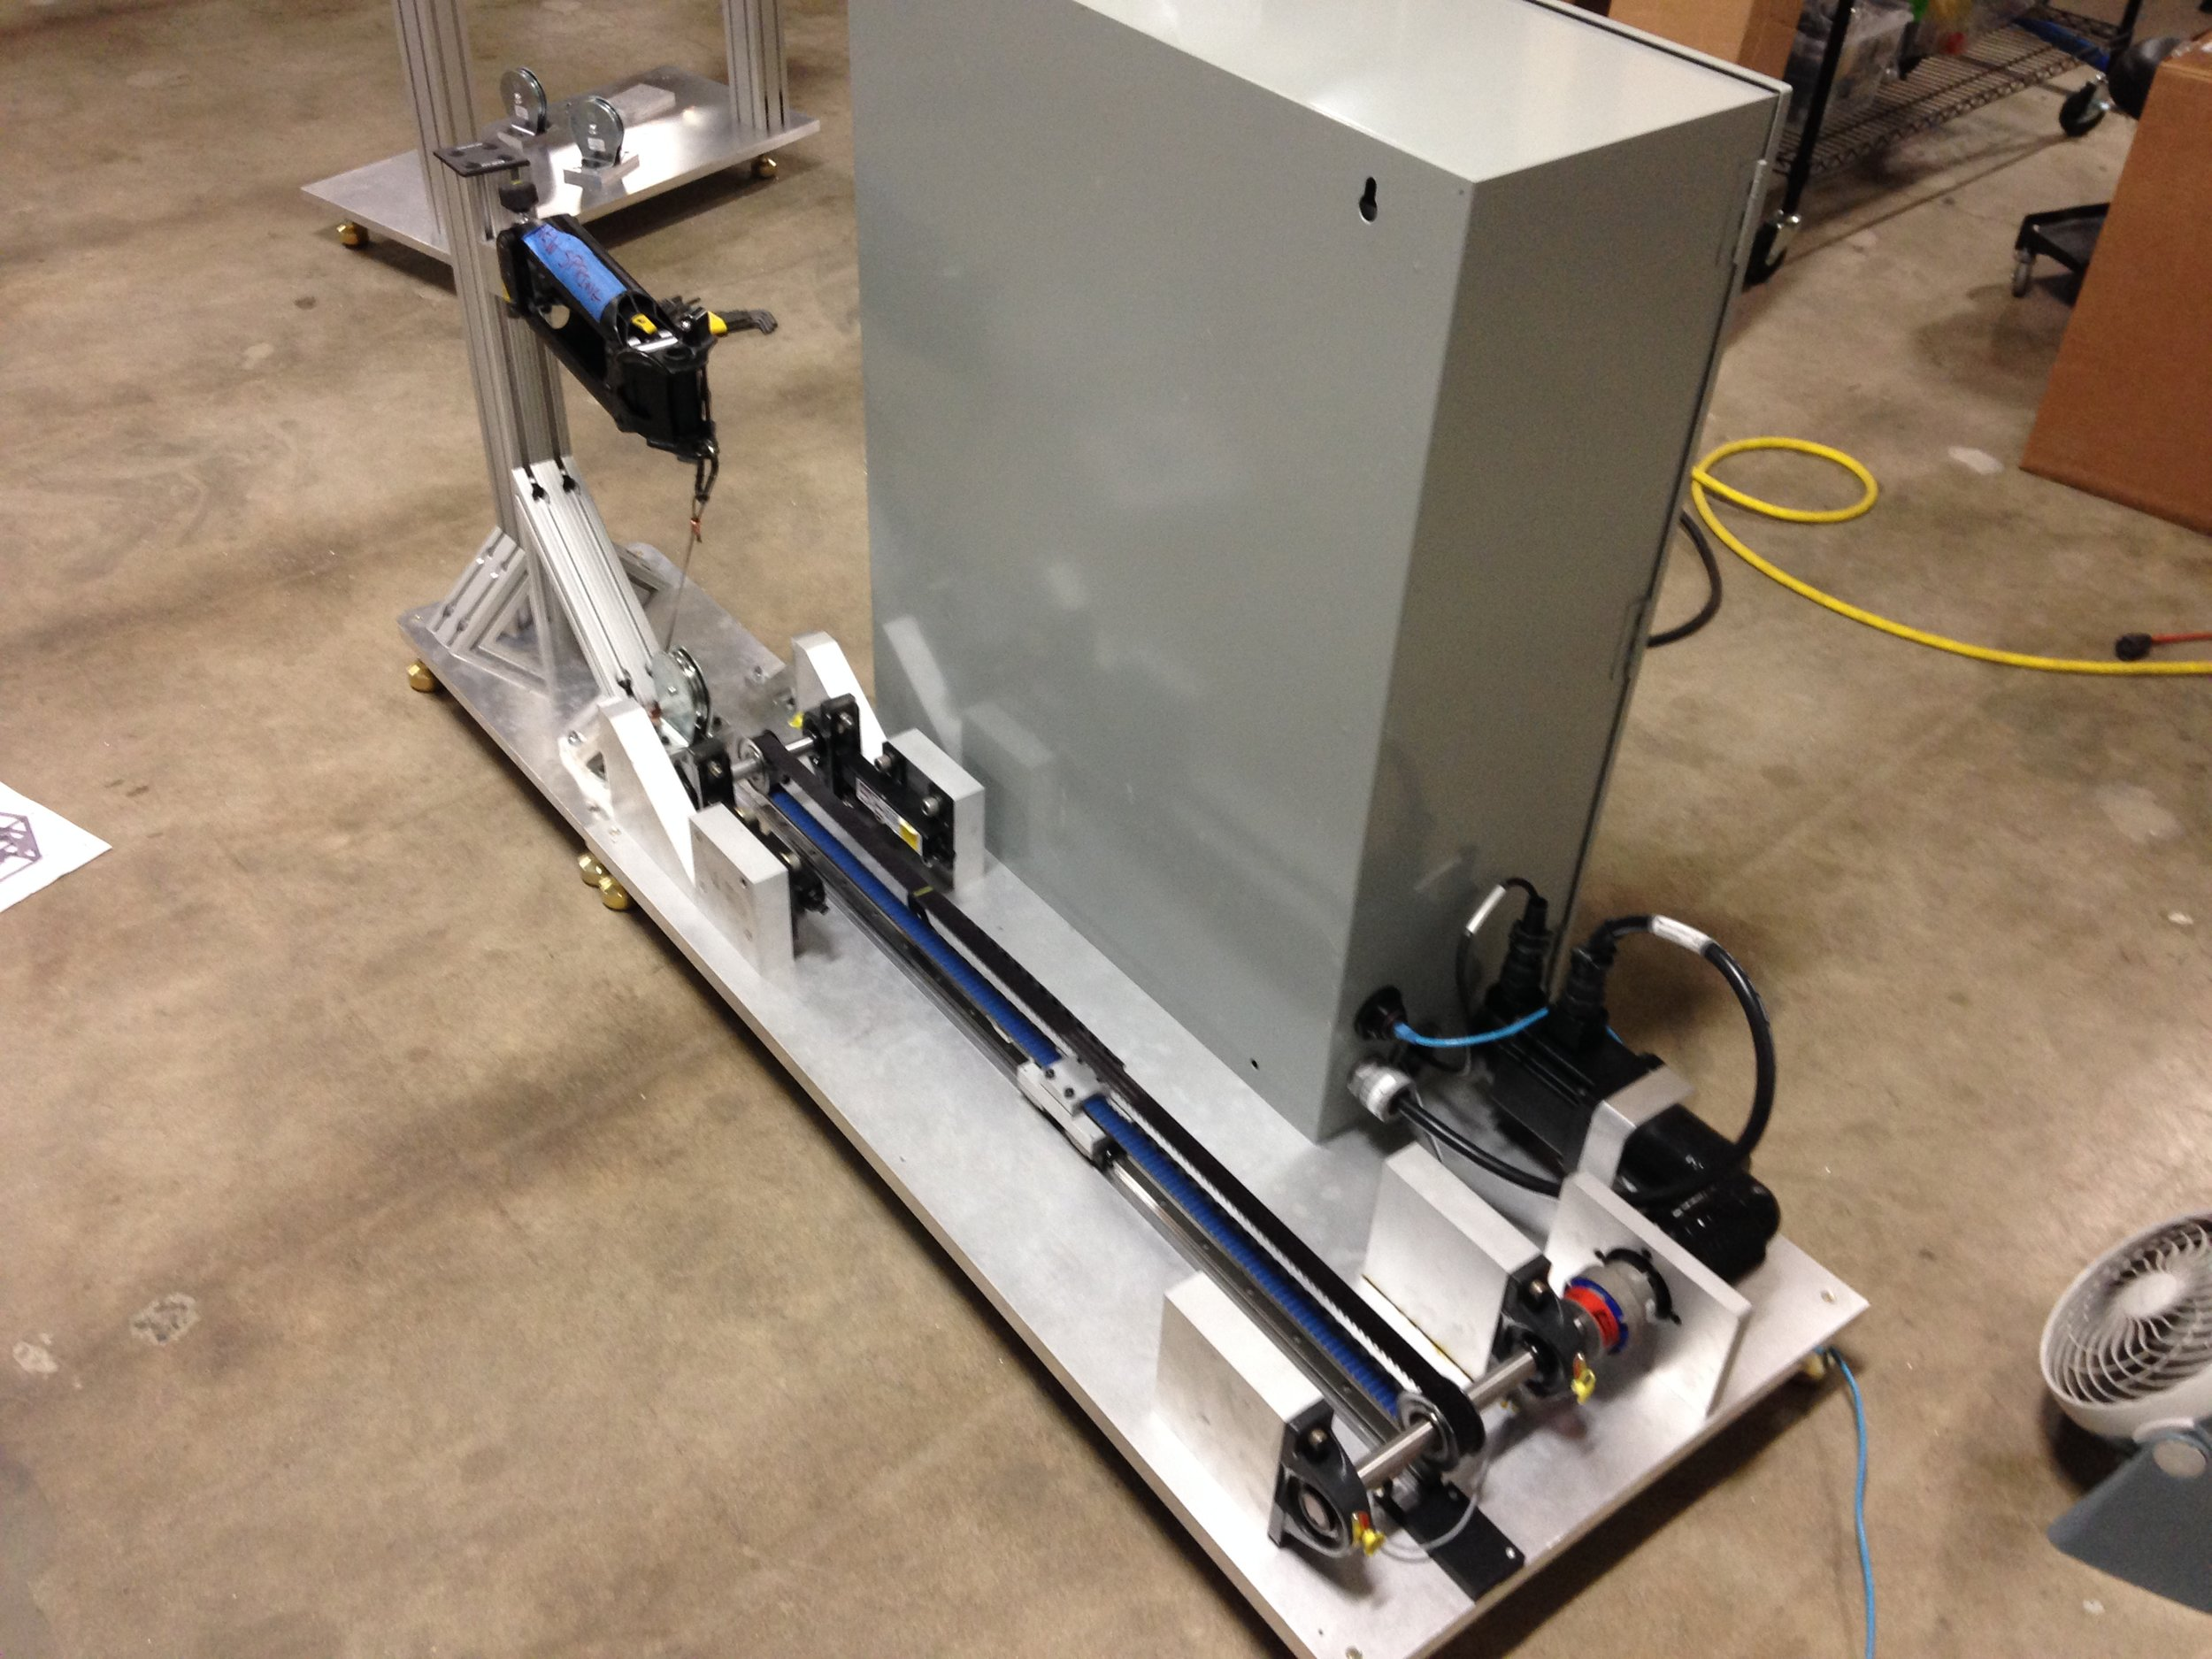 Designed an automated modular testing system to measure load degradation for a spring loaded gravity balance product